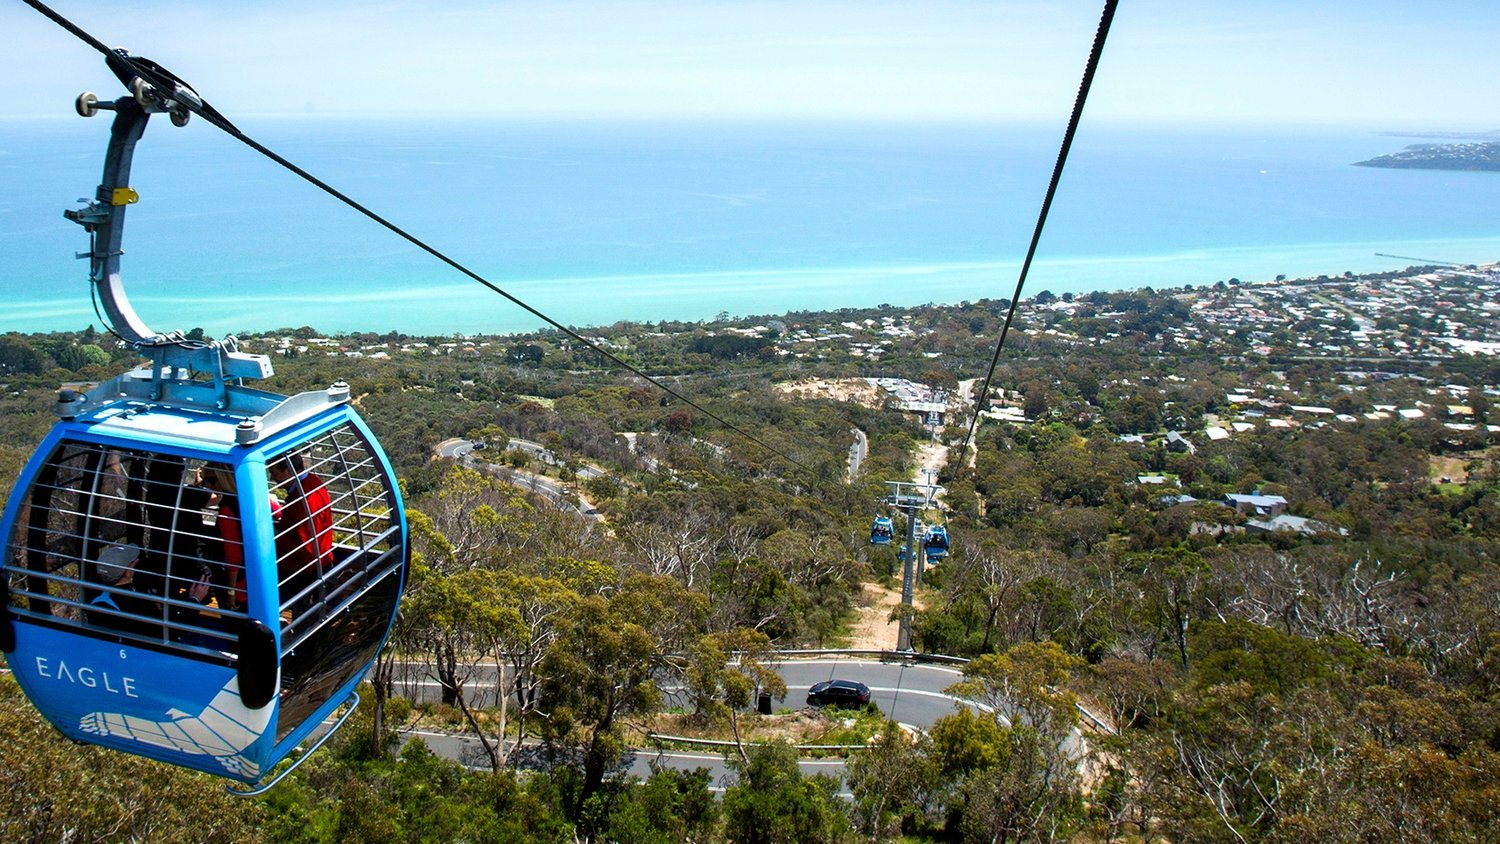 100 things to do in melbourne with kids arthurs seat eagle